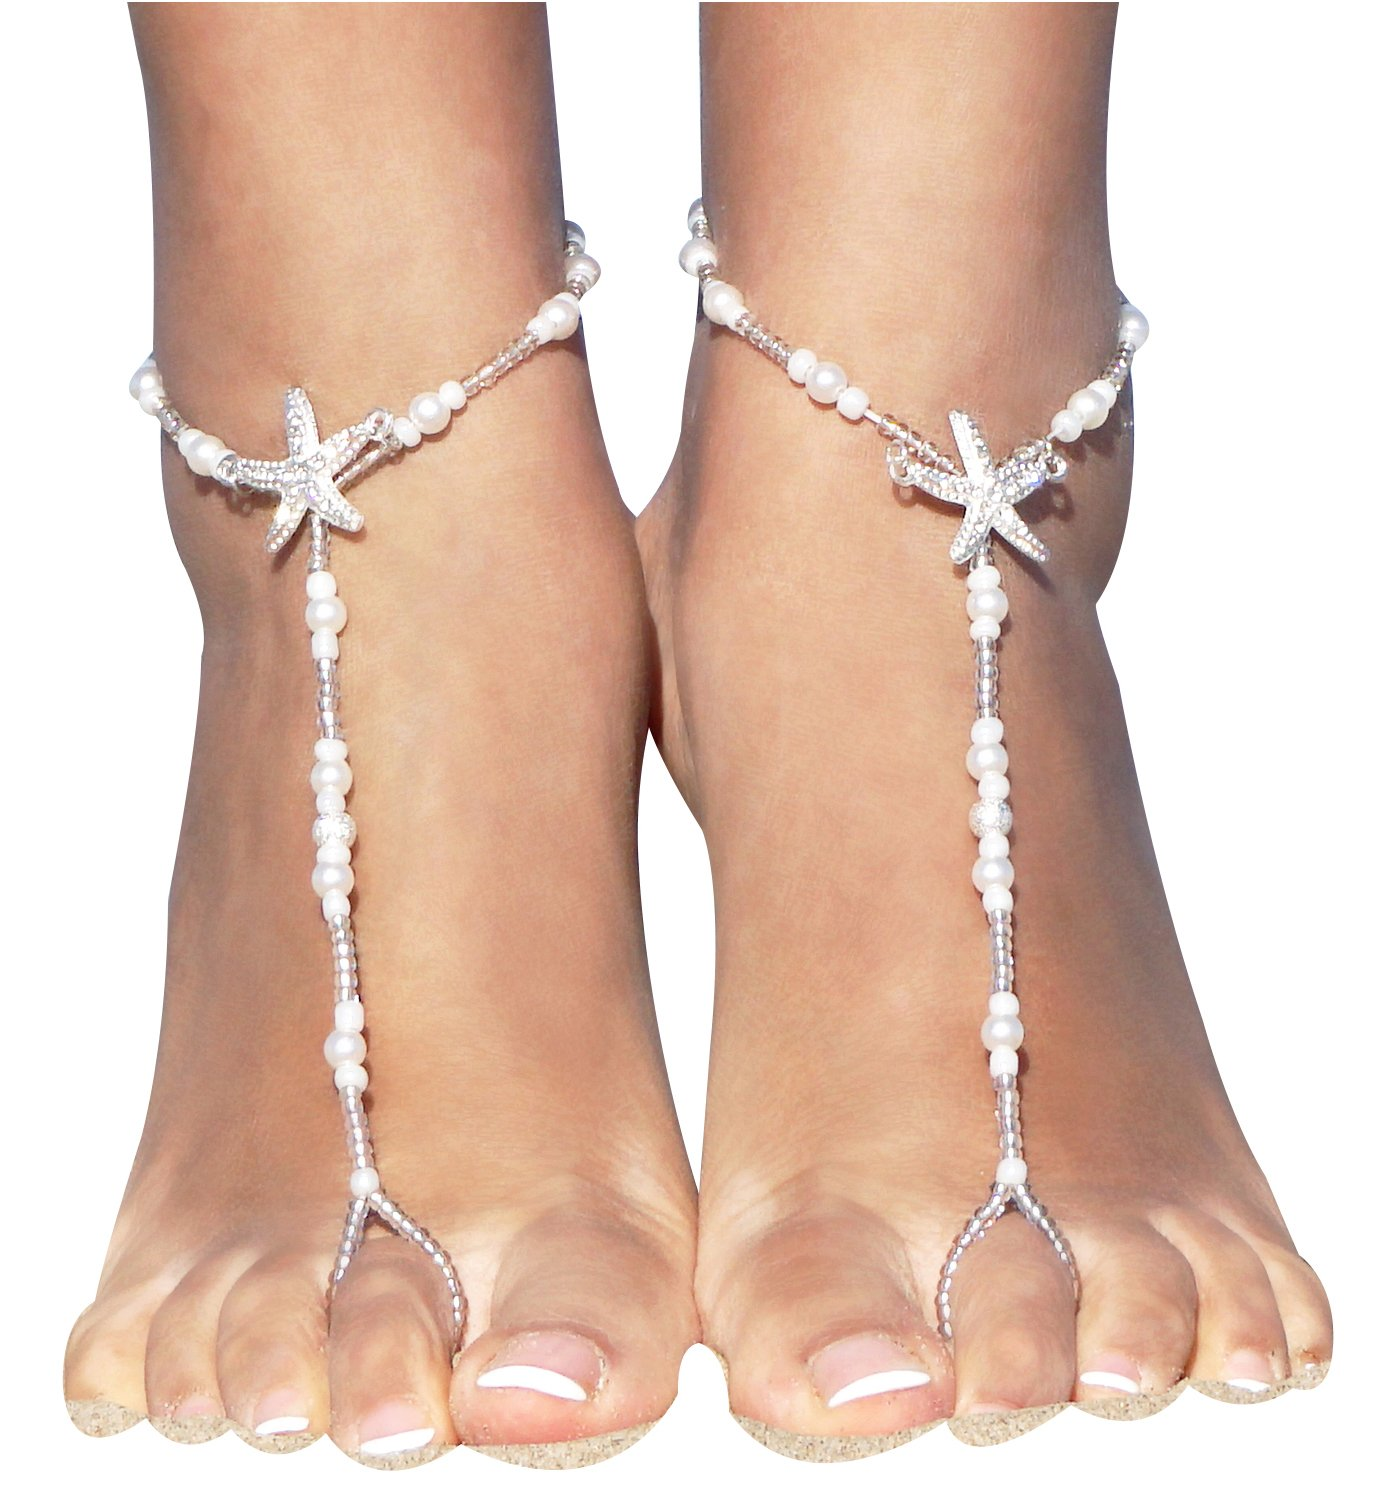 jewelry anklet beach fairybones pin sandals wedding on silver barefoot rhinestone foot by